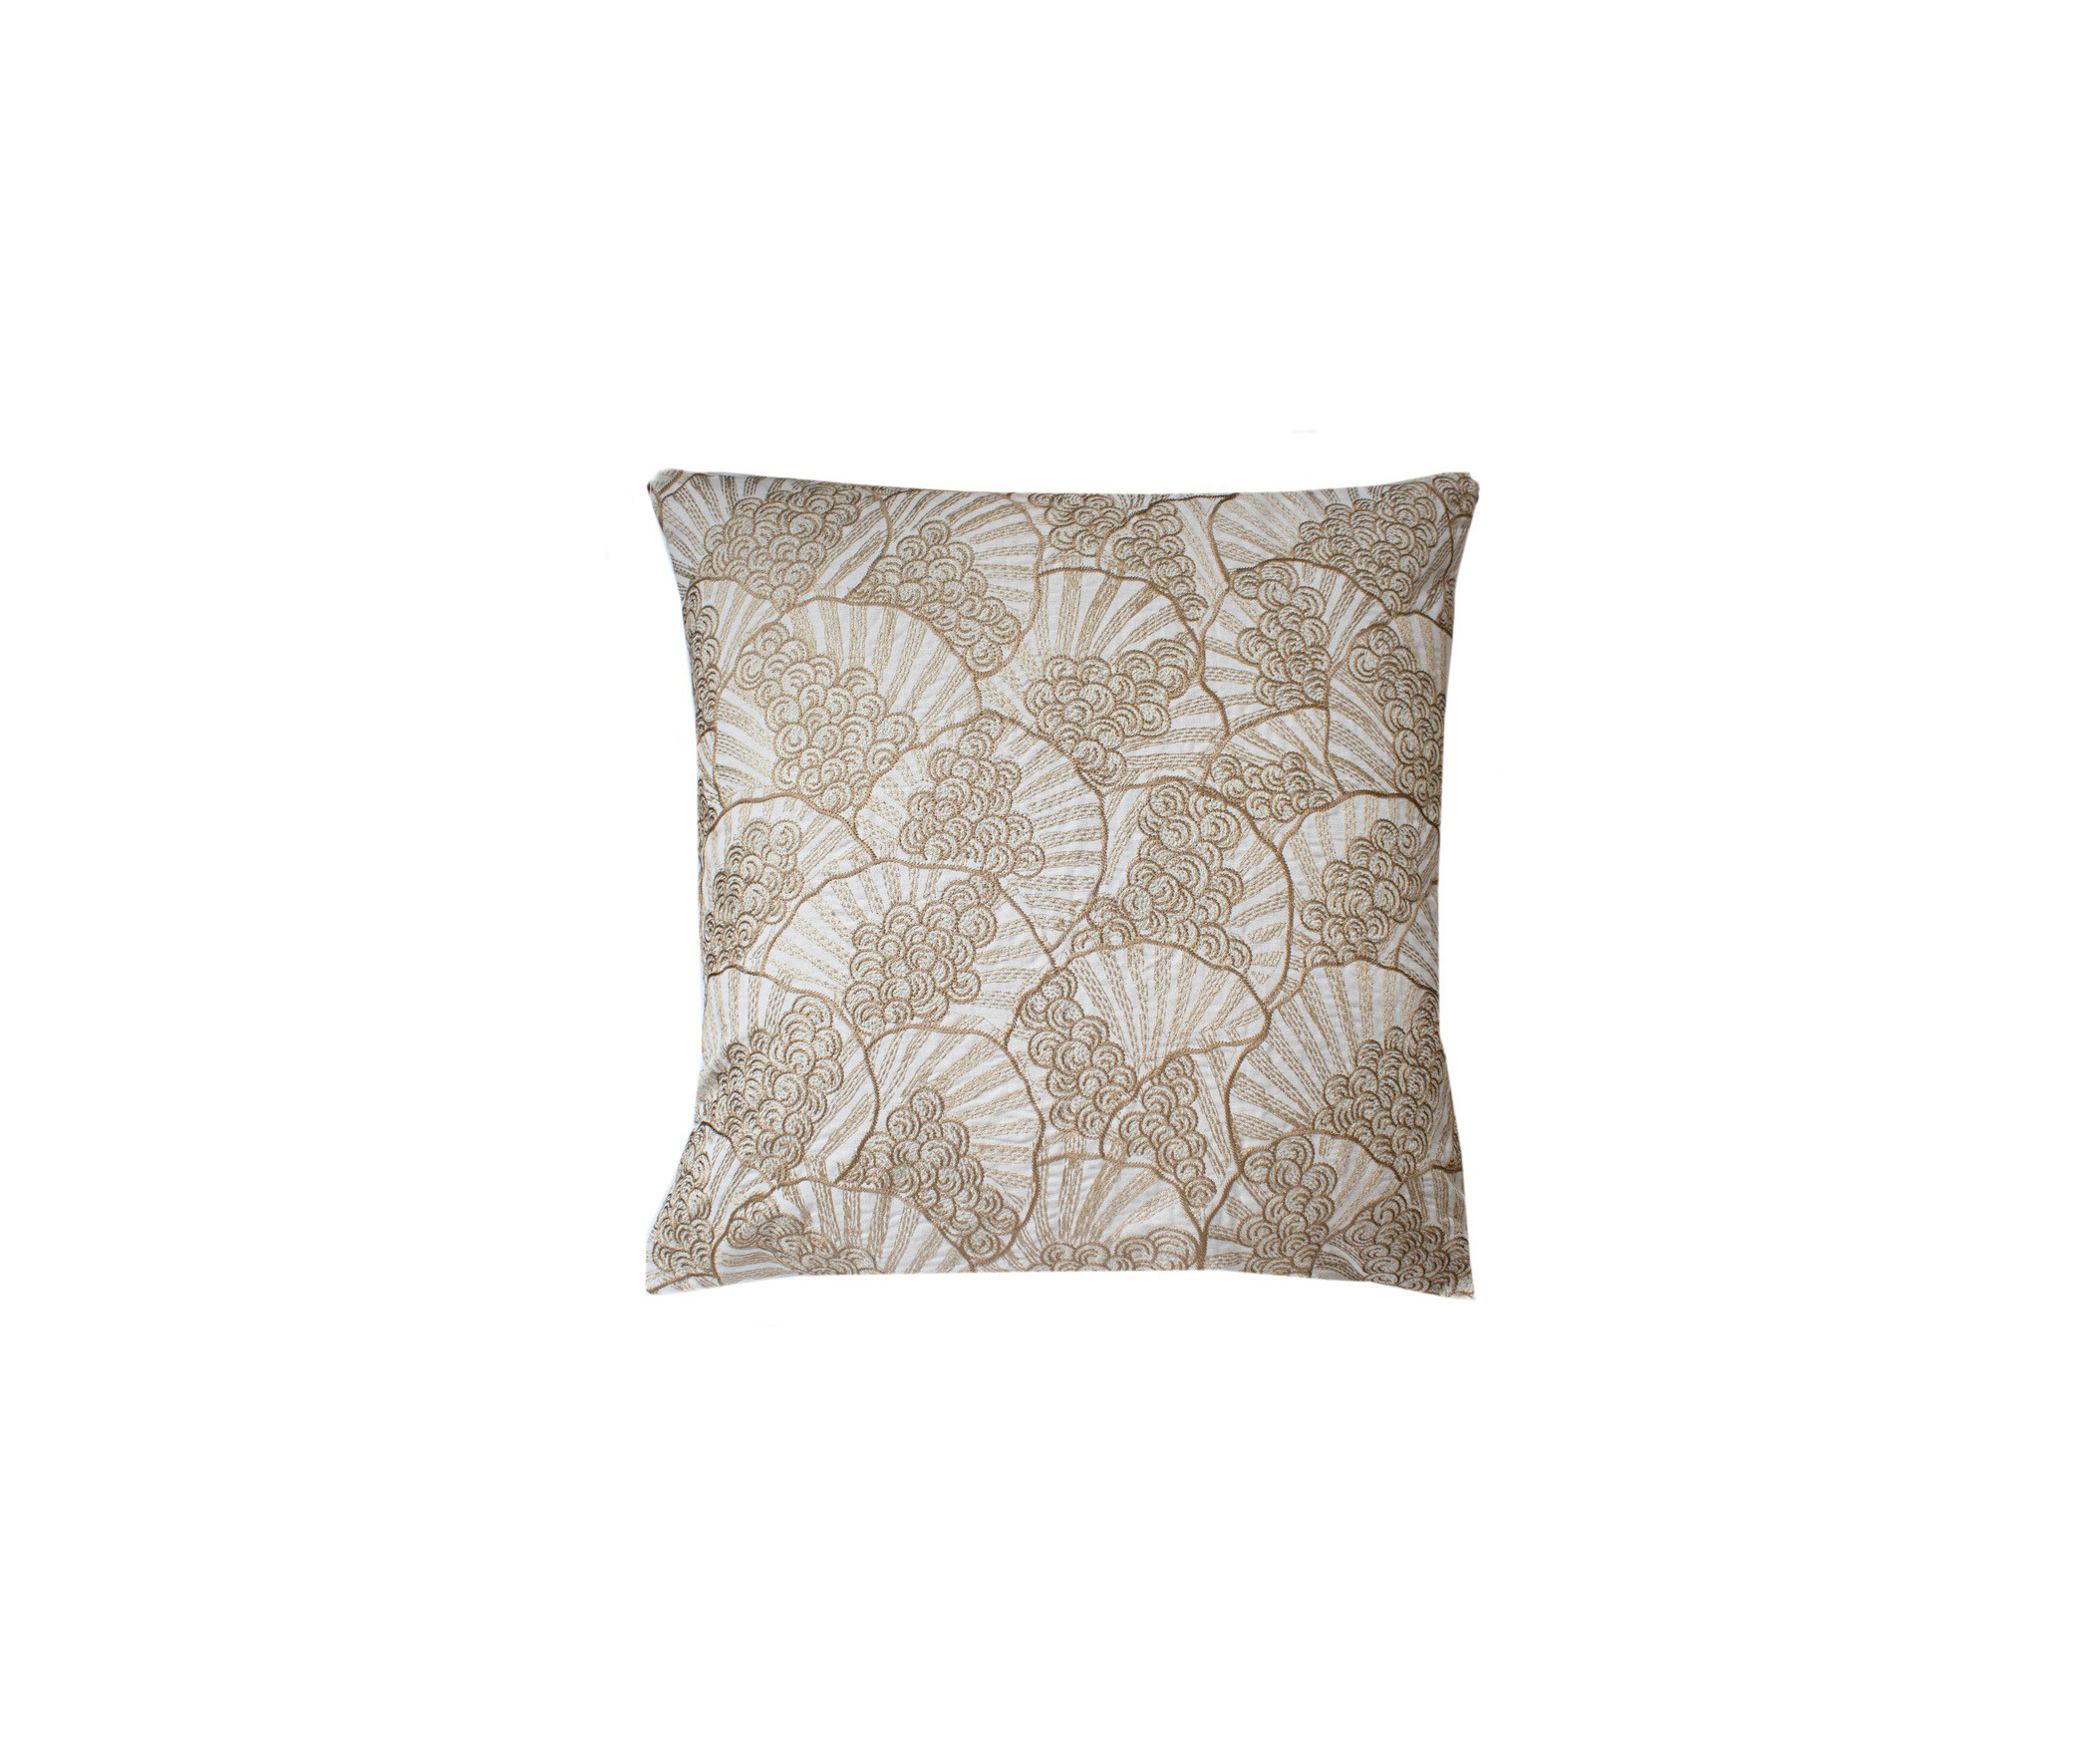 Ann Gish_Second Empore Pillow in Champagne_int_products